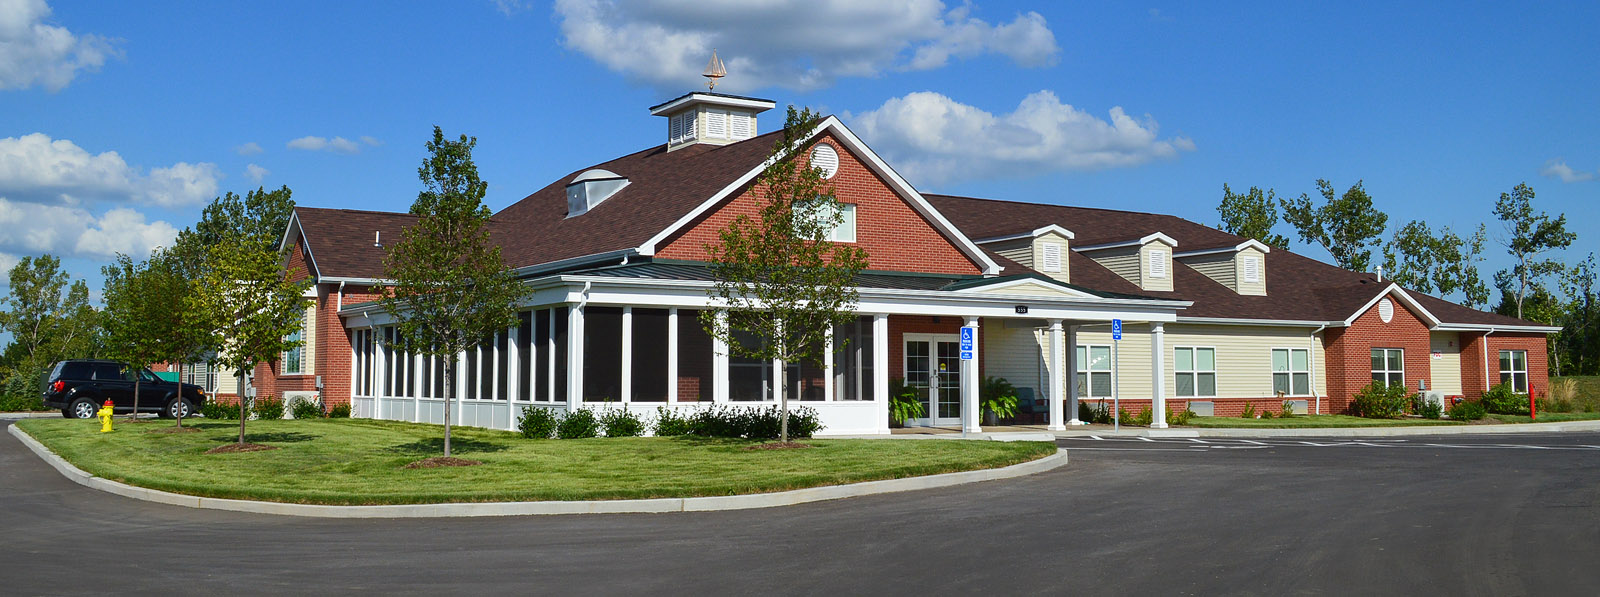 Meadowview Assisted Living exterior